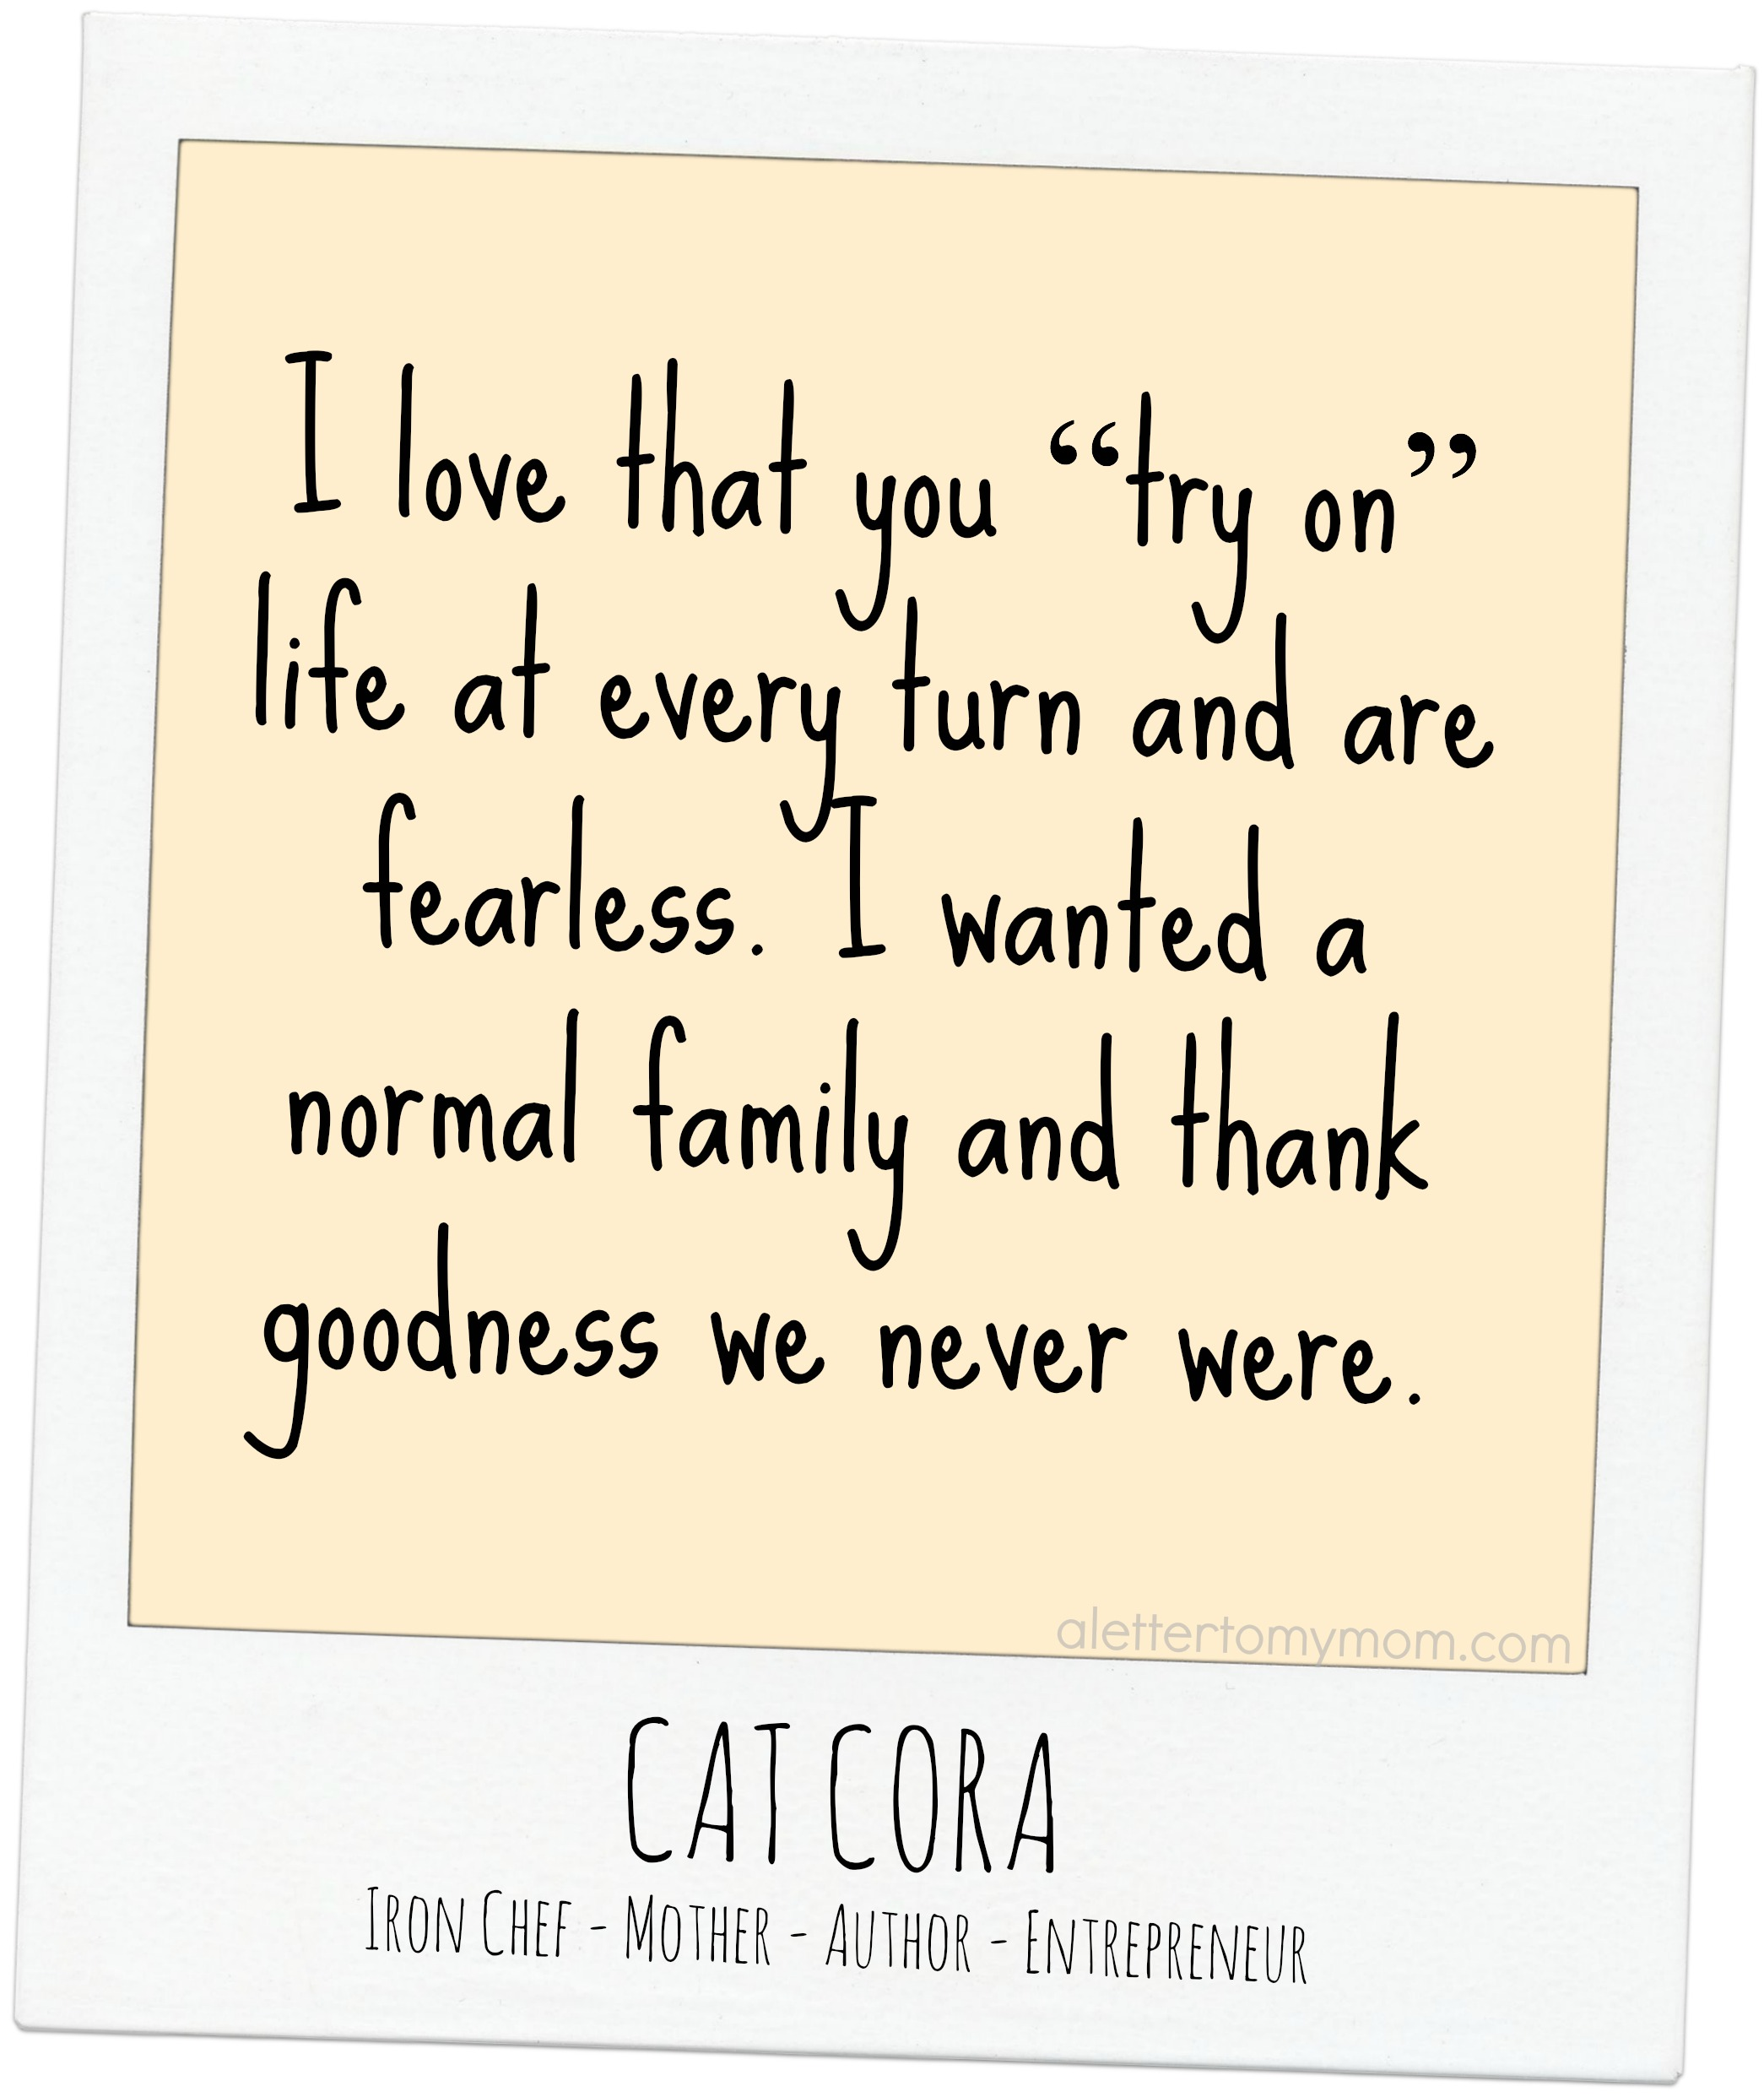 cat cora iron chef a letter to my mom motherhood quotes quotes